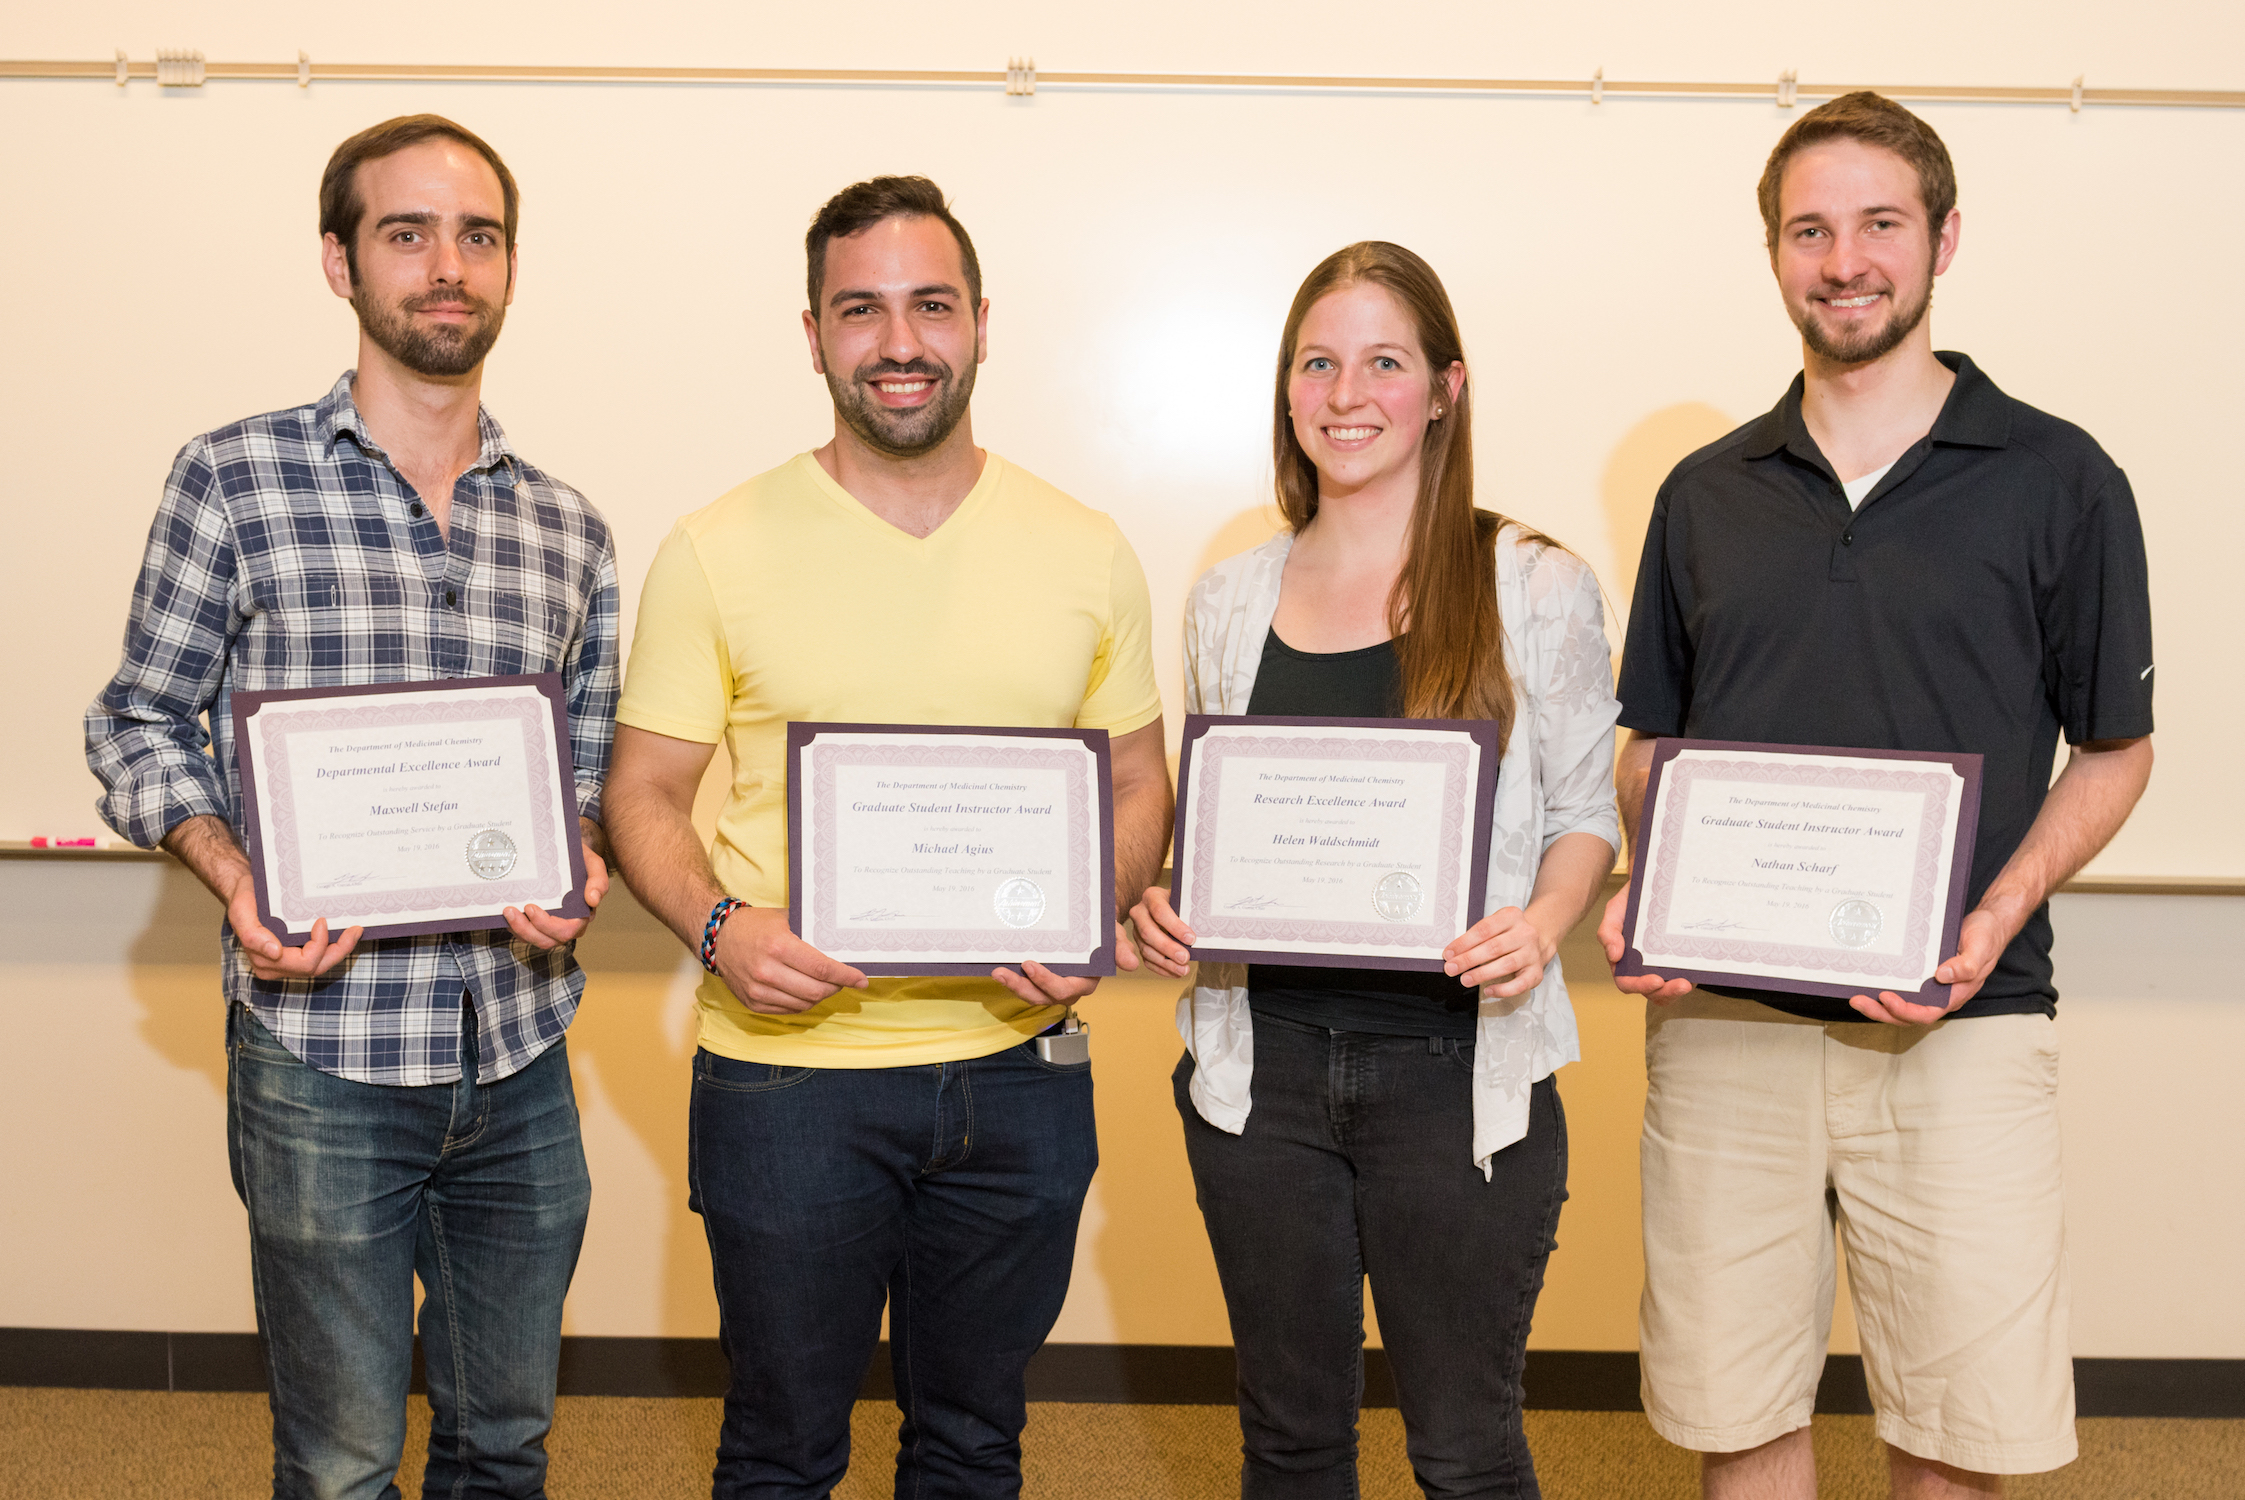 phd thesis in pharmaceutical chemistry To provide a high-quality graduate program culminating in the award of a phd in pharmaceutical sciences, including the areas of pharmaceutics, pharmacognosy, medicinal chemistry, and pharmacology to foster the development of students as critical thinkers, team players, self-directed interdisciplinary scholars, and communicators.